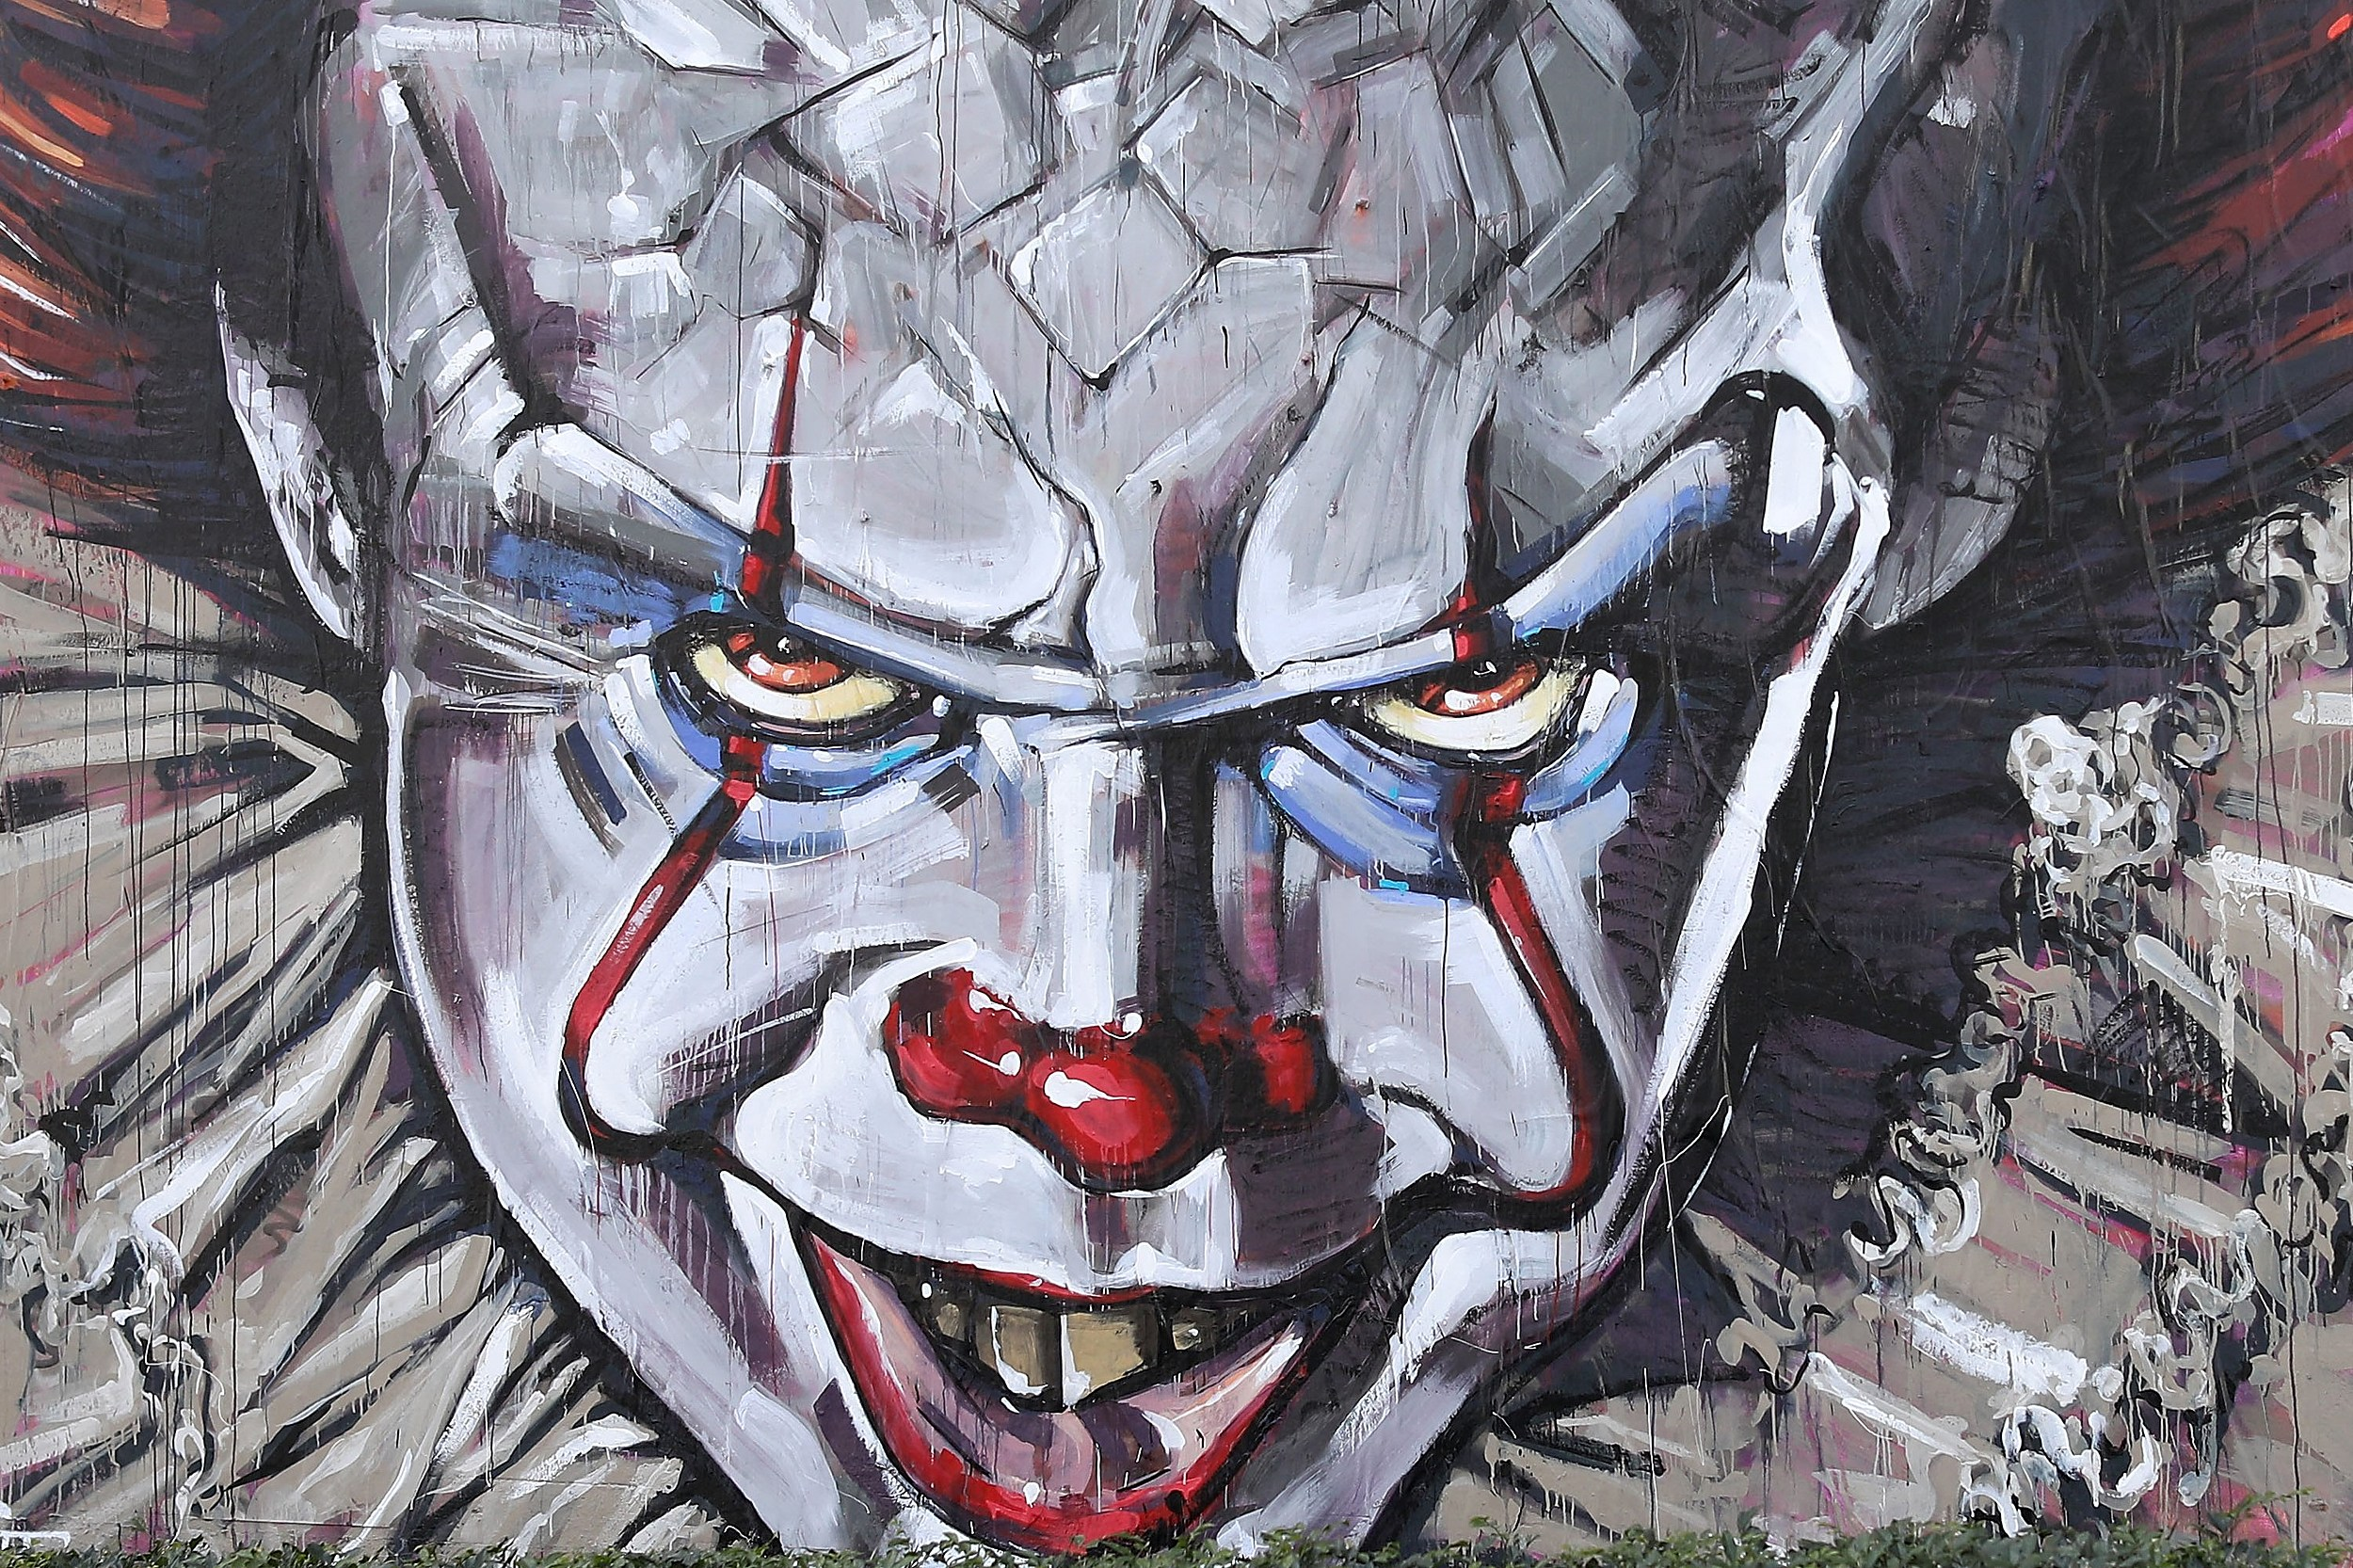 Halloween Bash 2020 94.9 Wanna Win Our Halloween Bash Contest? Here's How To Be Pennywise!